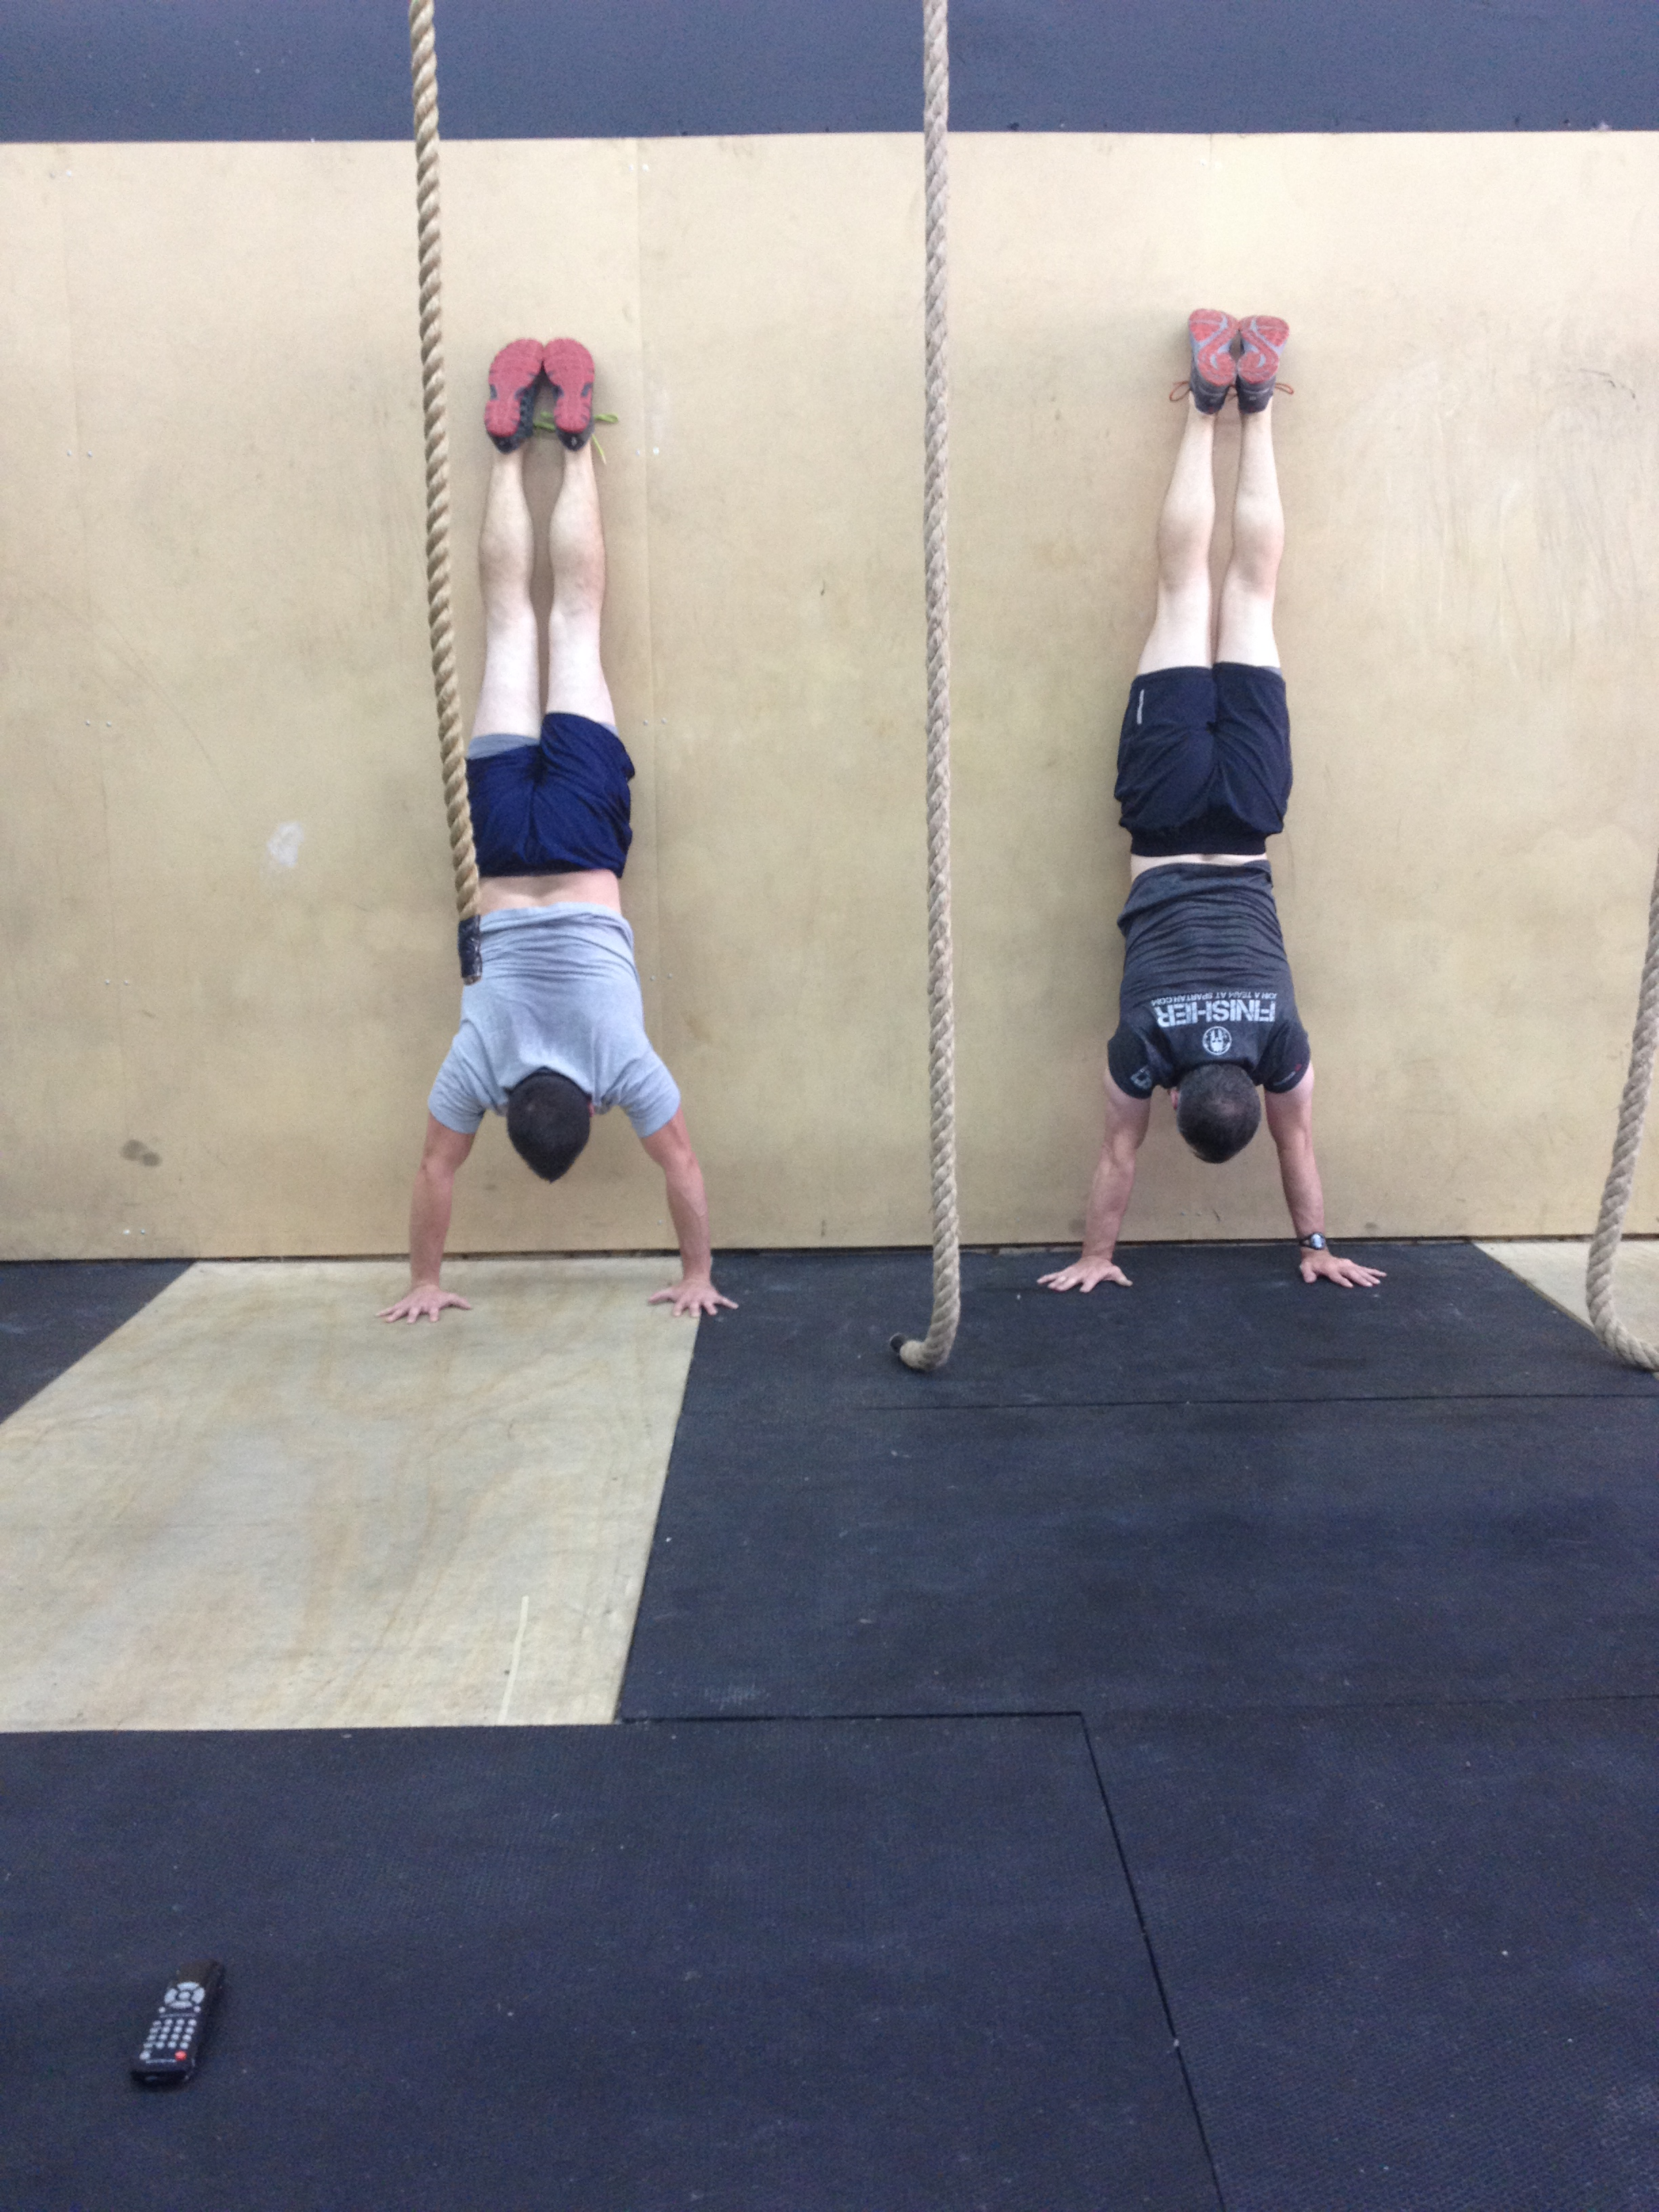 Seb and David showing great handstand endurance.